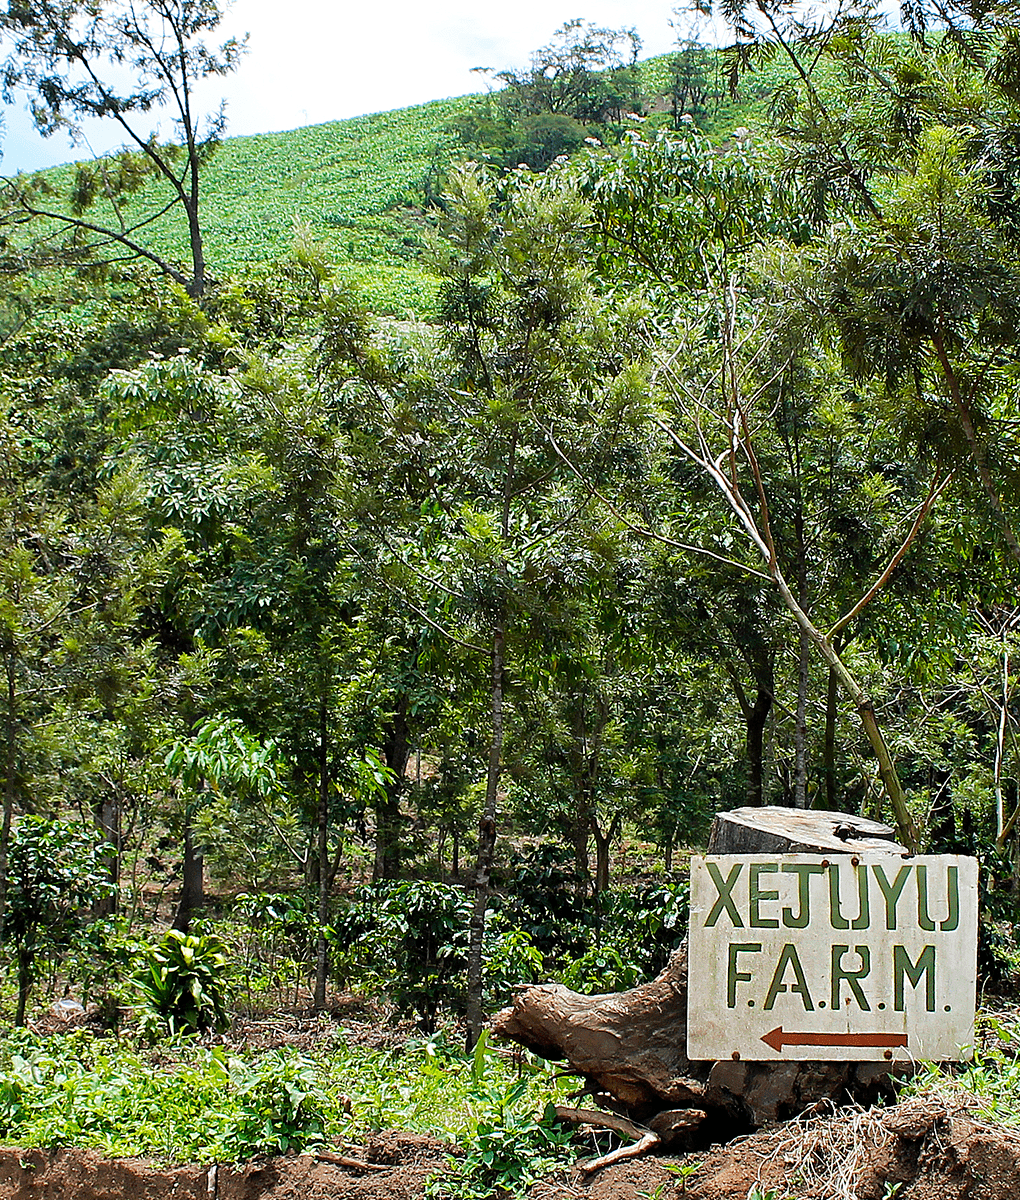 Sign post for Xejuyu Coffee Farm, Guatemala, Union Coffee